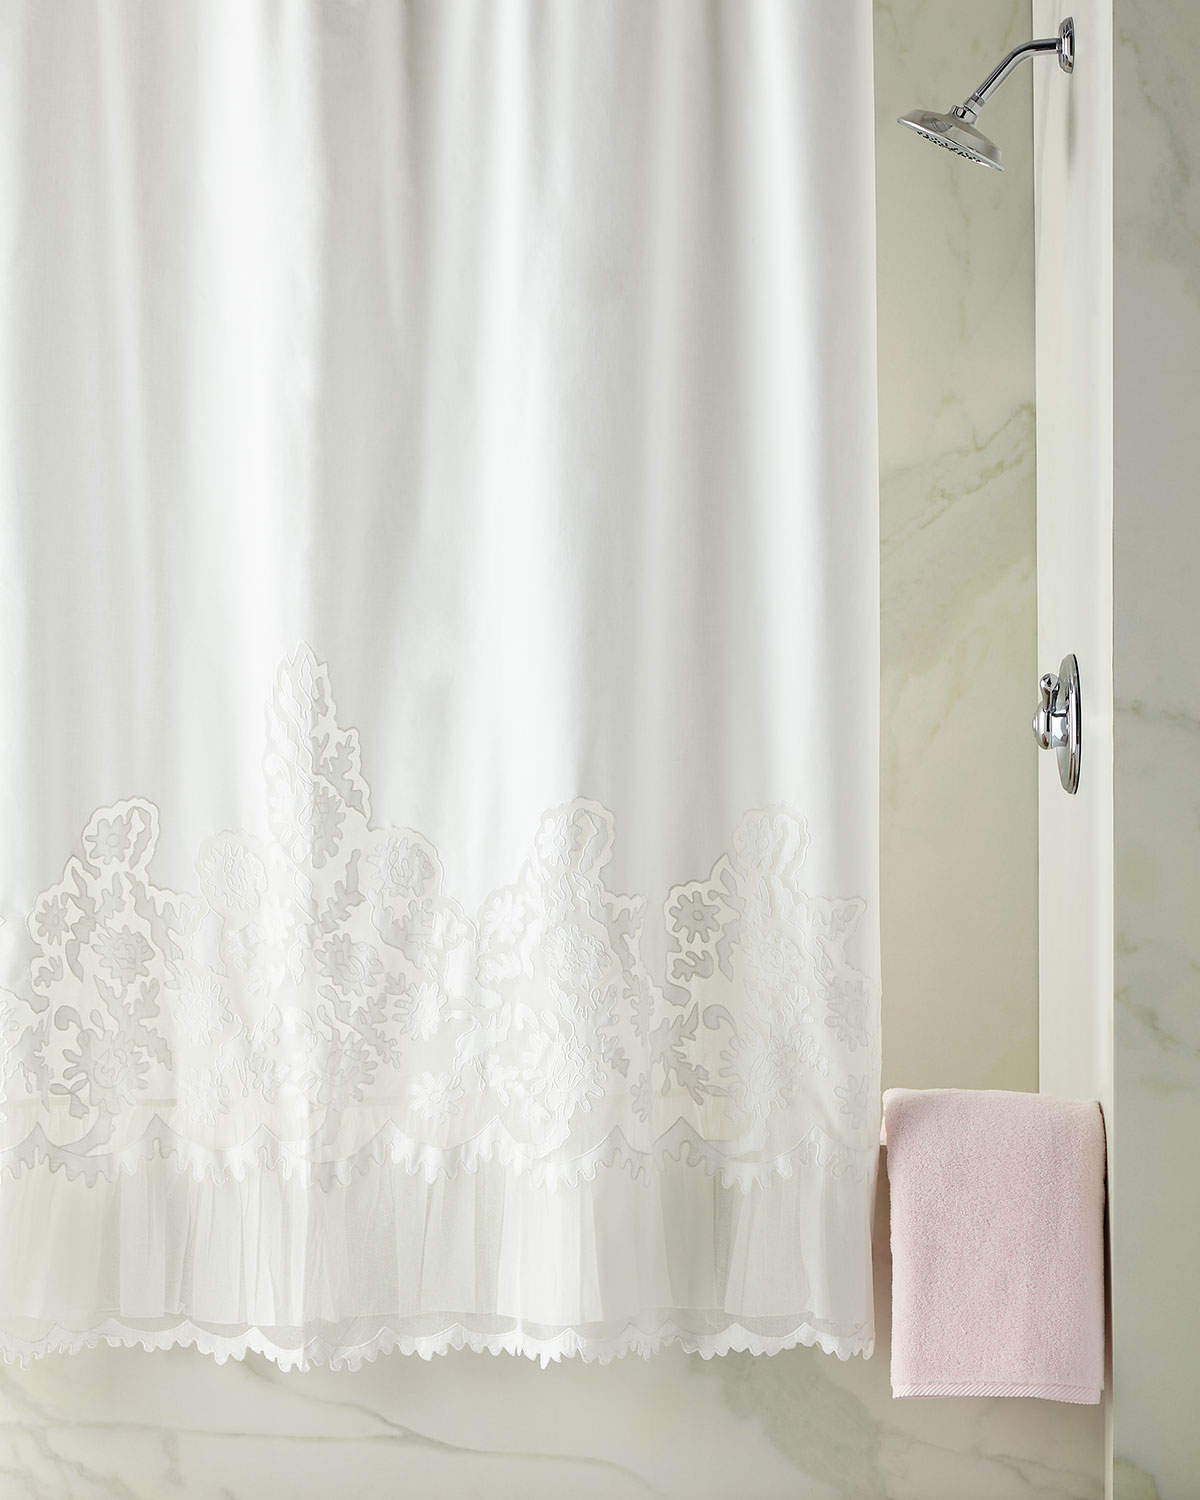 Caprice Shower Curtain White